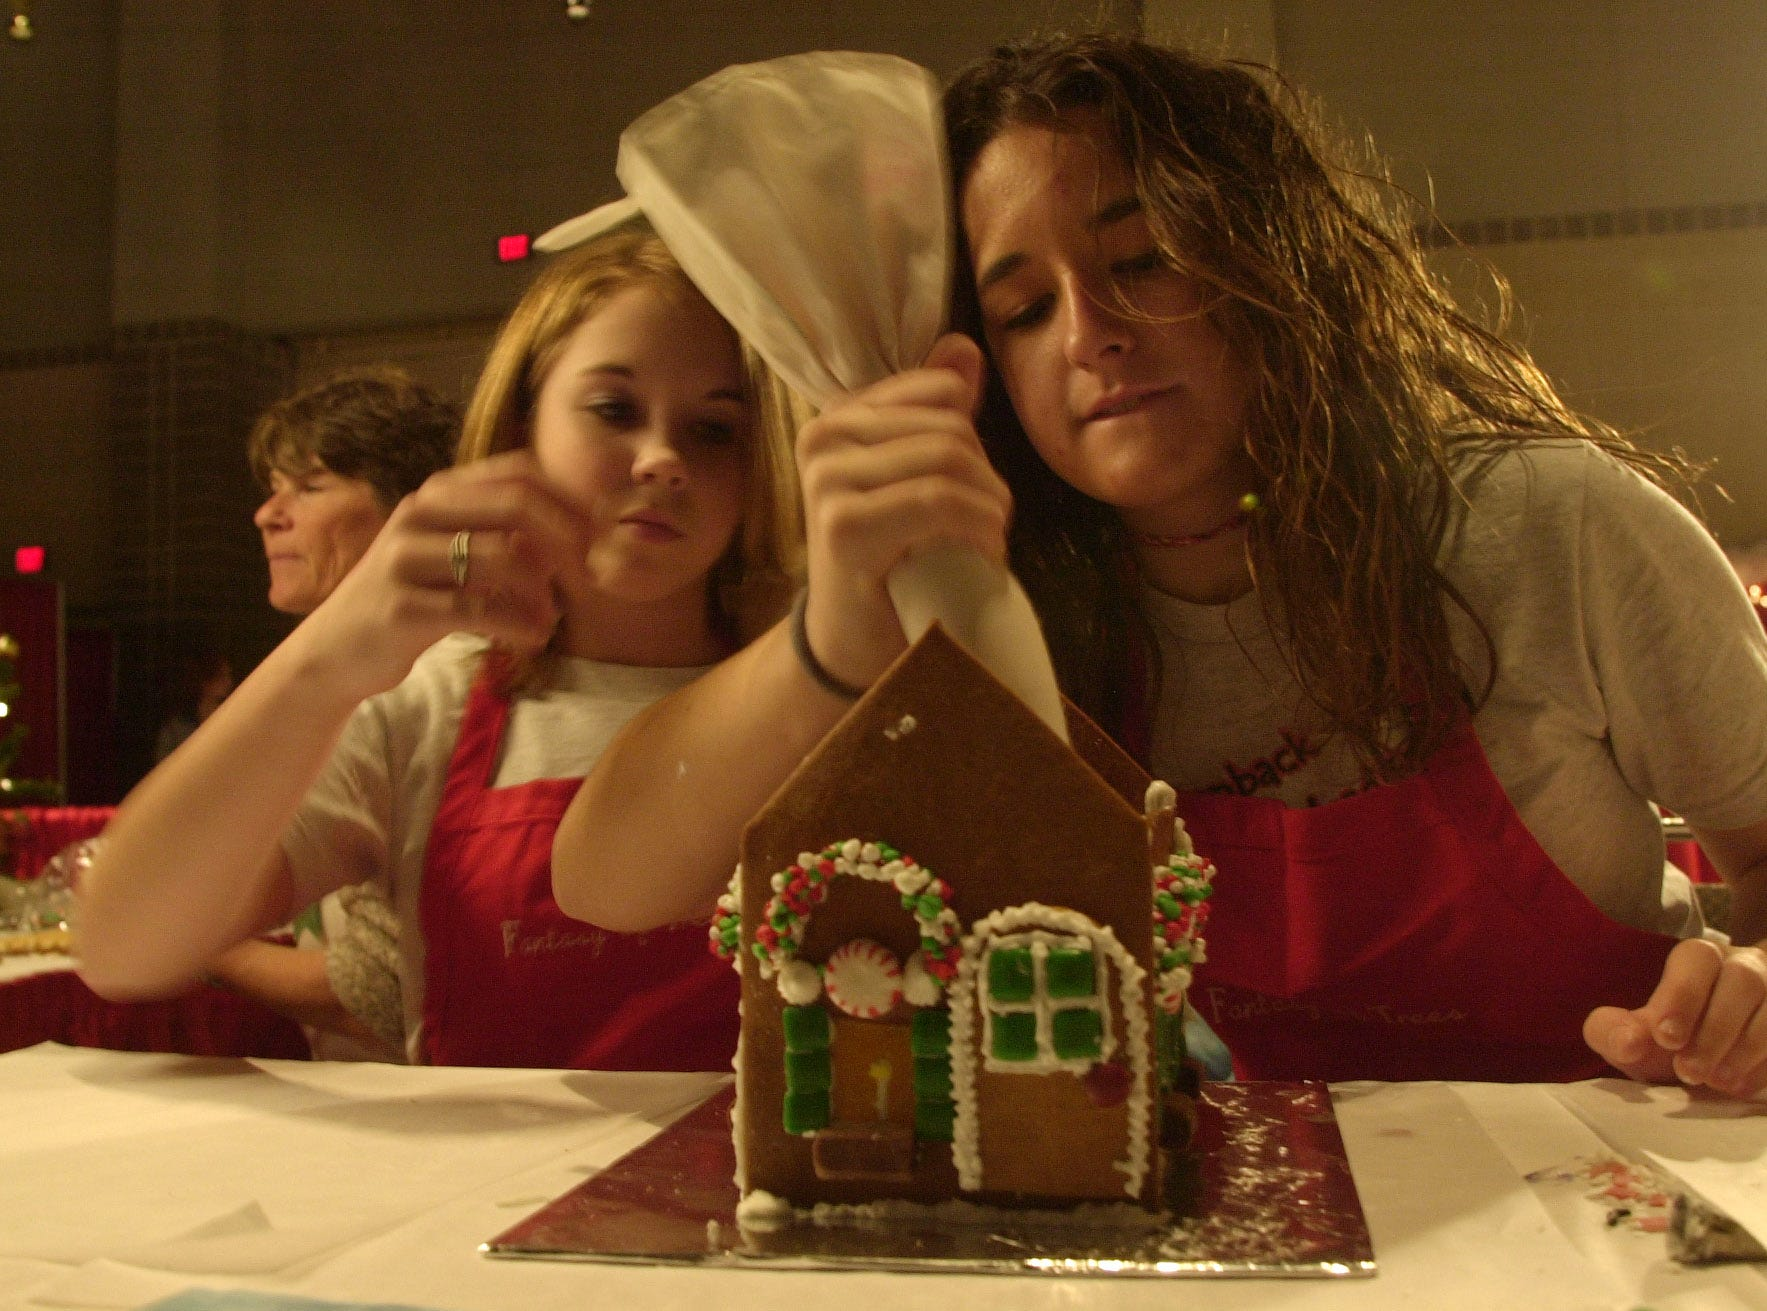 Greenback High School students Crysta Hill, left, and Raven Vogt demonstrate how to make gingerbread houses during the 2004 Fantasy of Trees at the Knoxville Convention Center Saturday.  JEFF ADKINS/NEWS SENTINEL STAFF